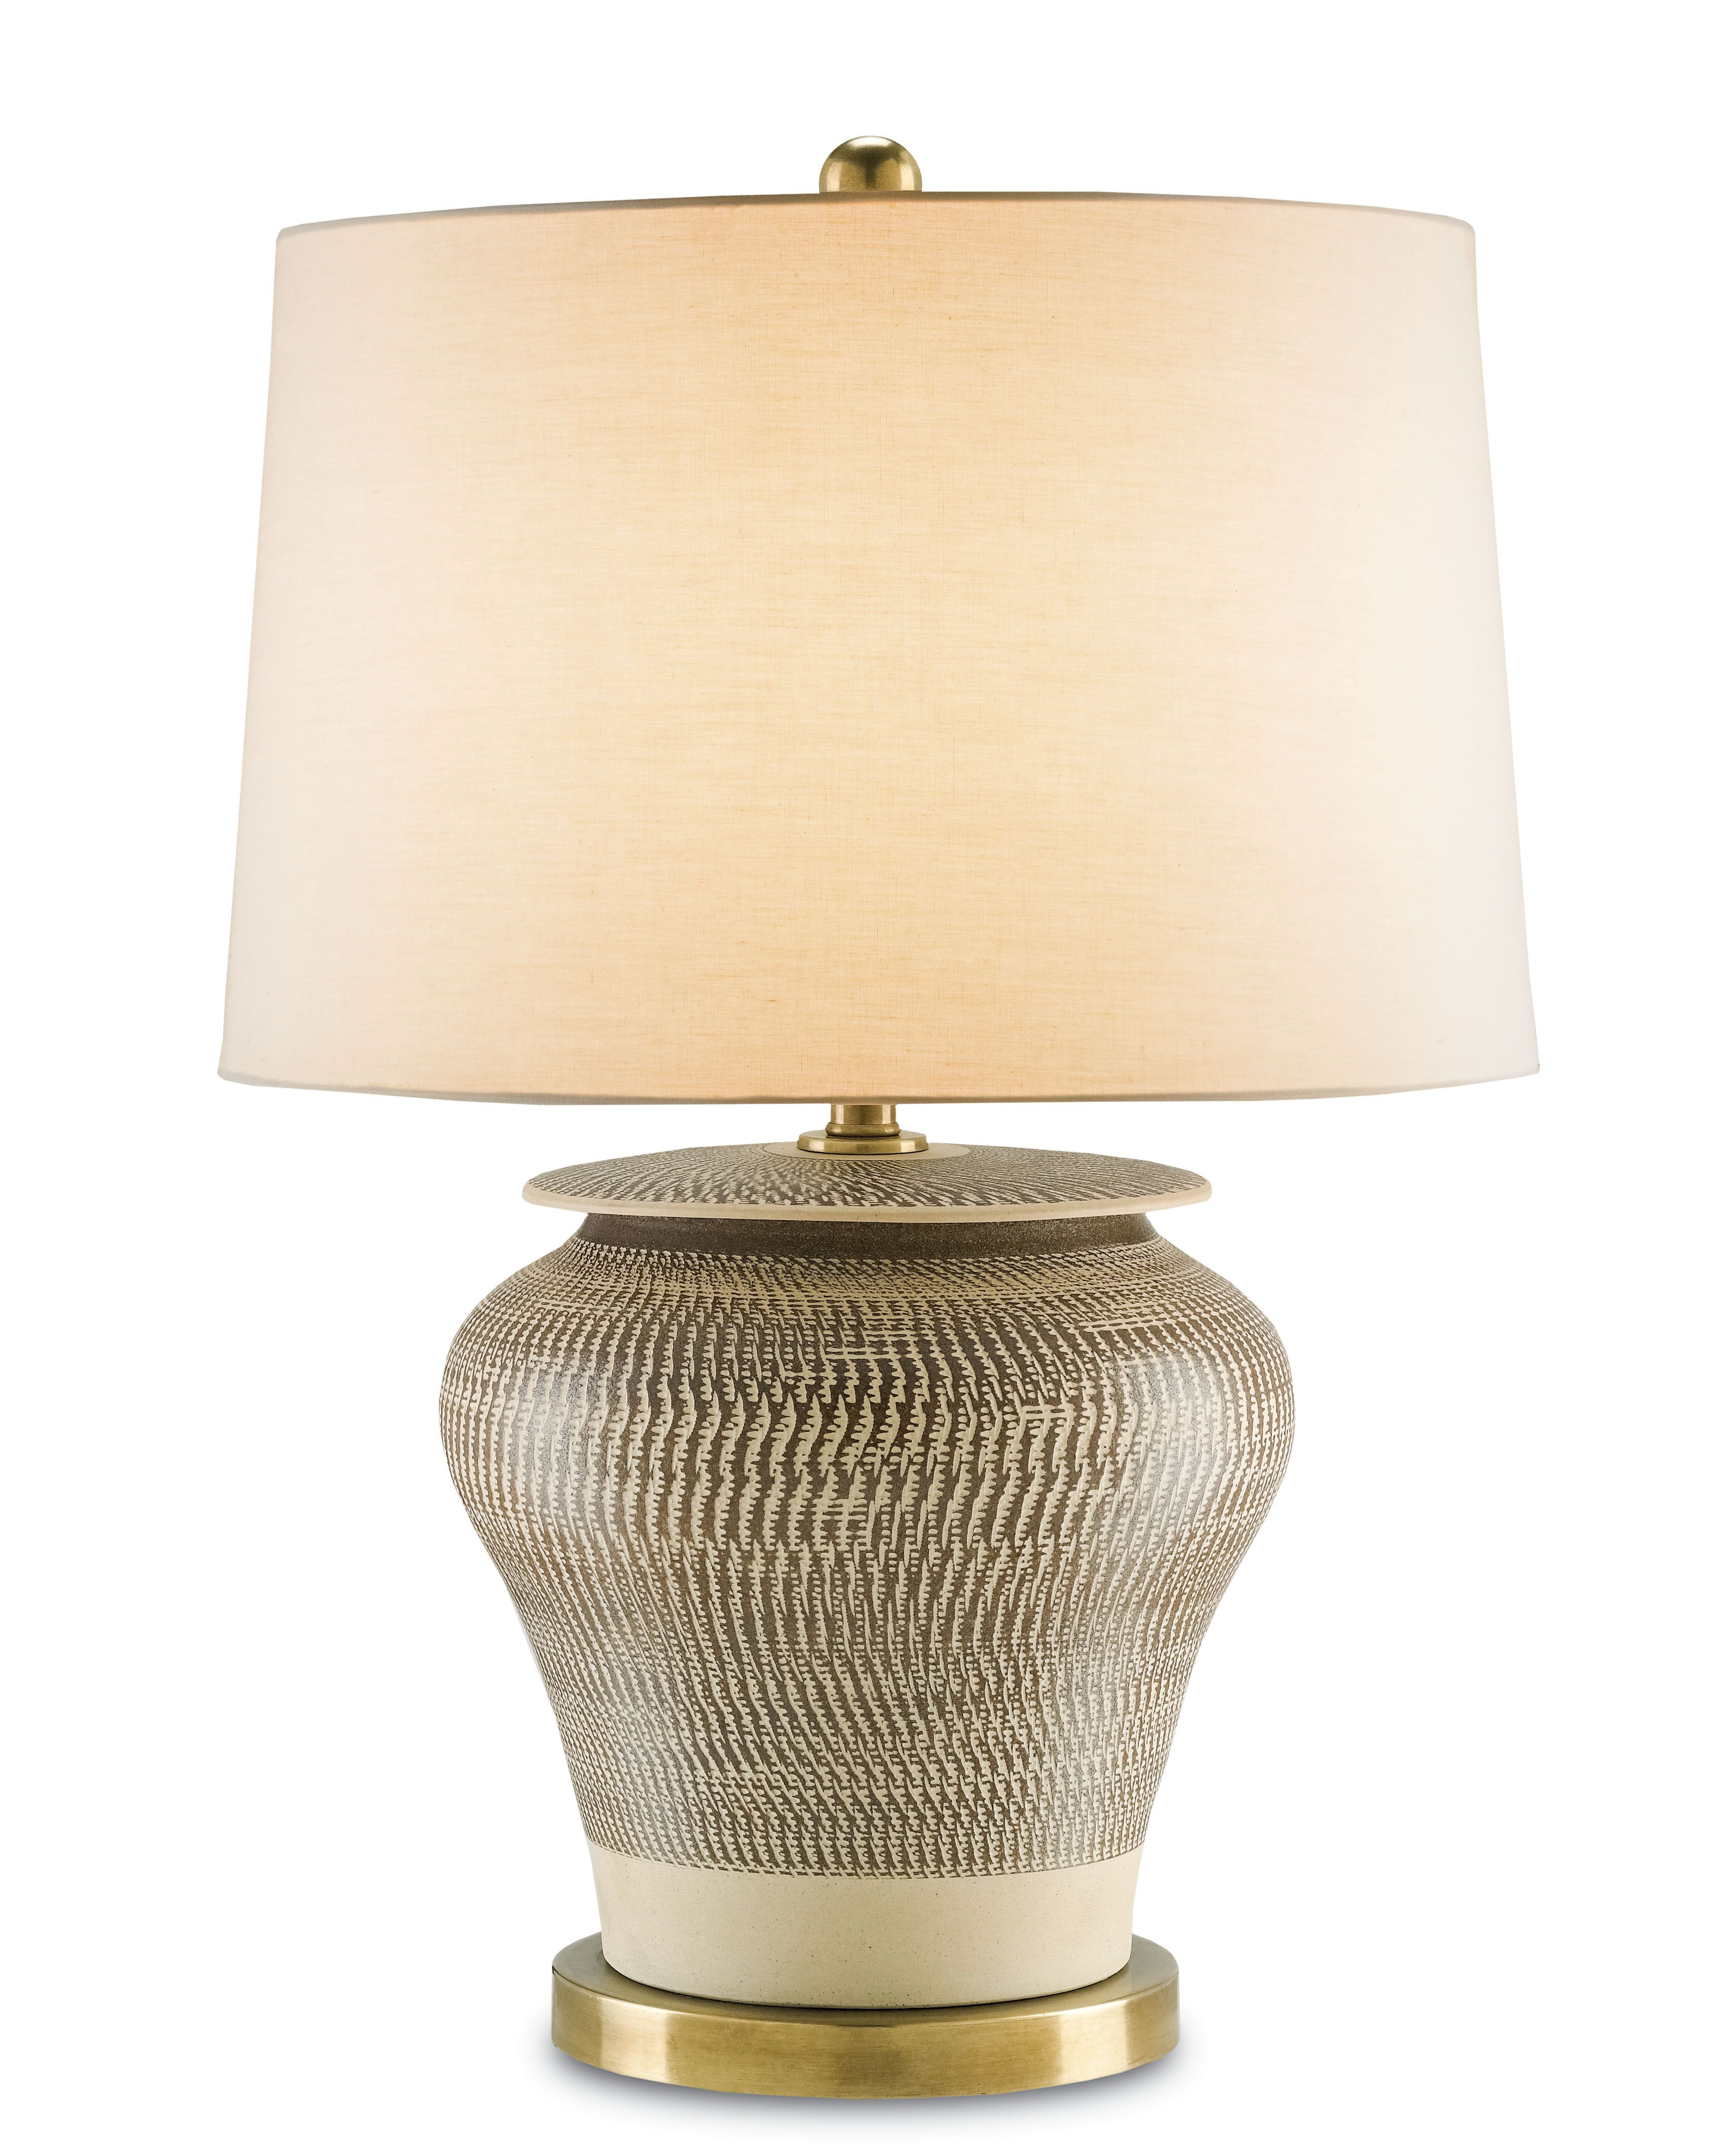 Currey Company Available At Robb Stucky Brown Table Lamps Table Lamp Brass Table Lamps